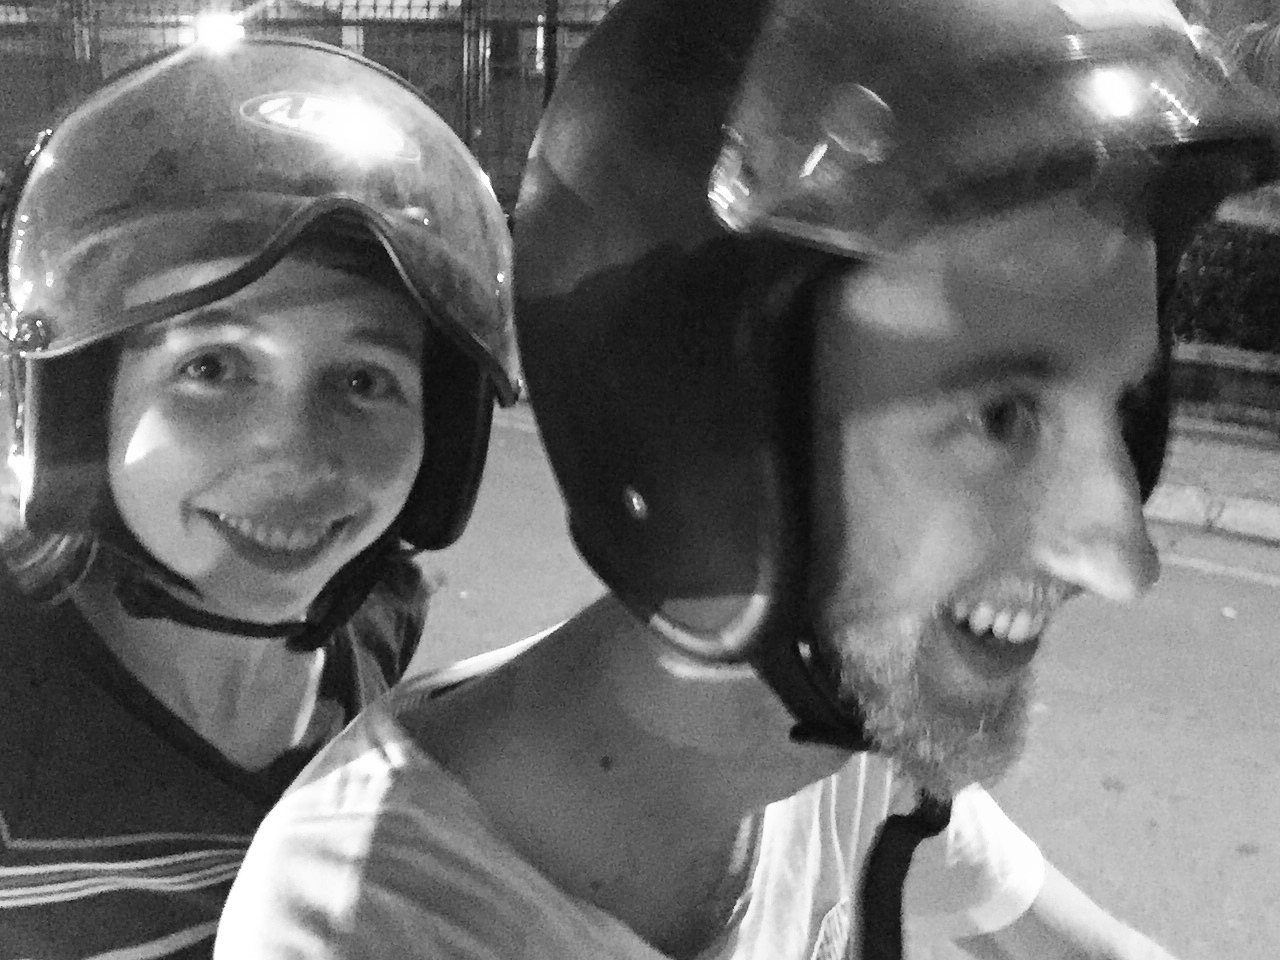 [Reblog] The rules of moped driving